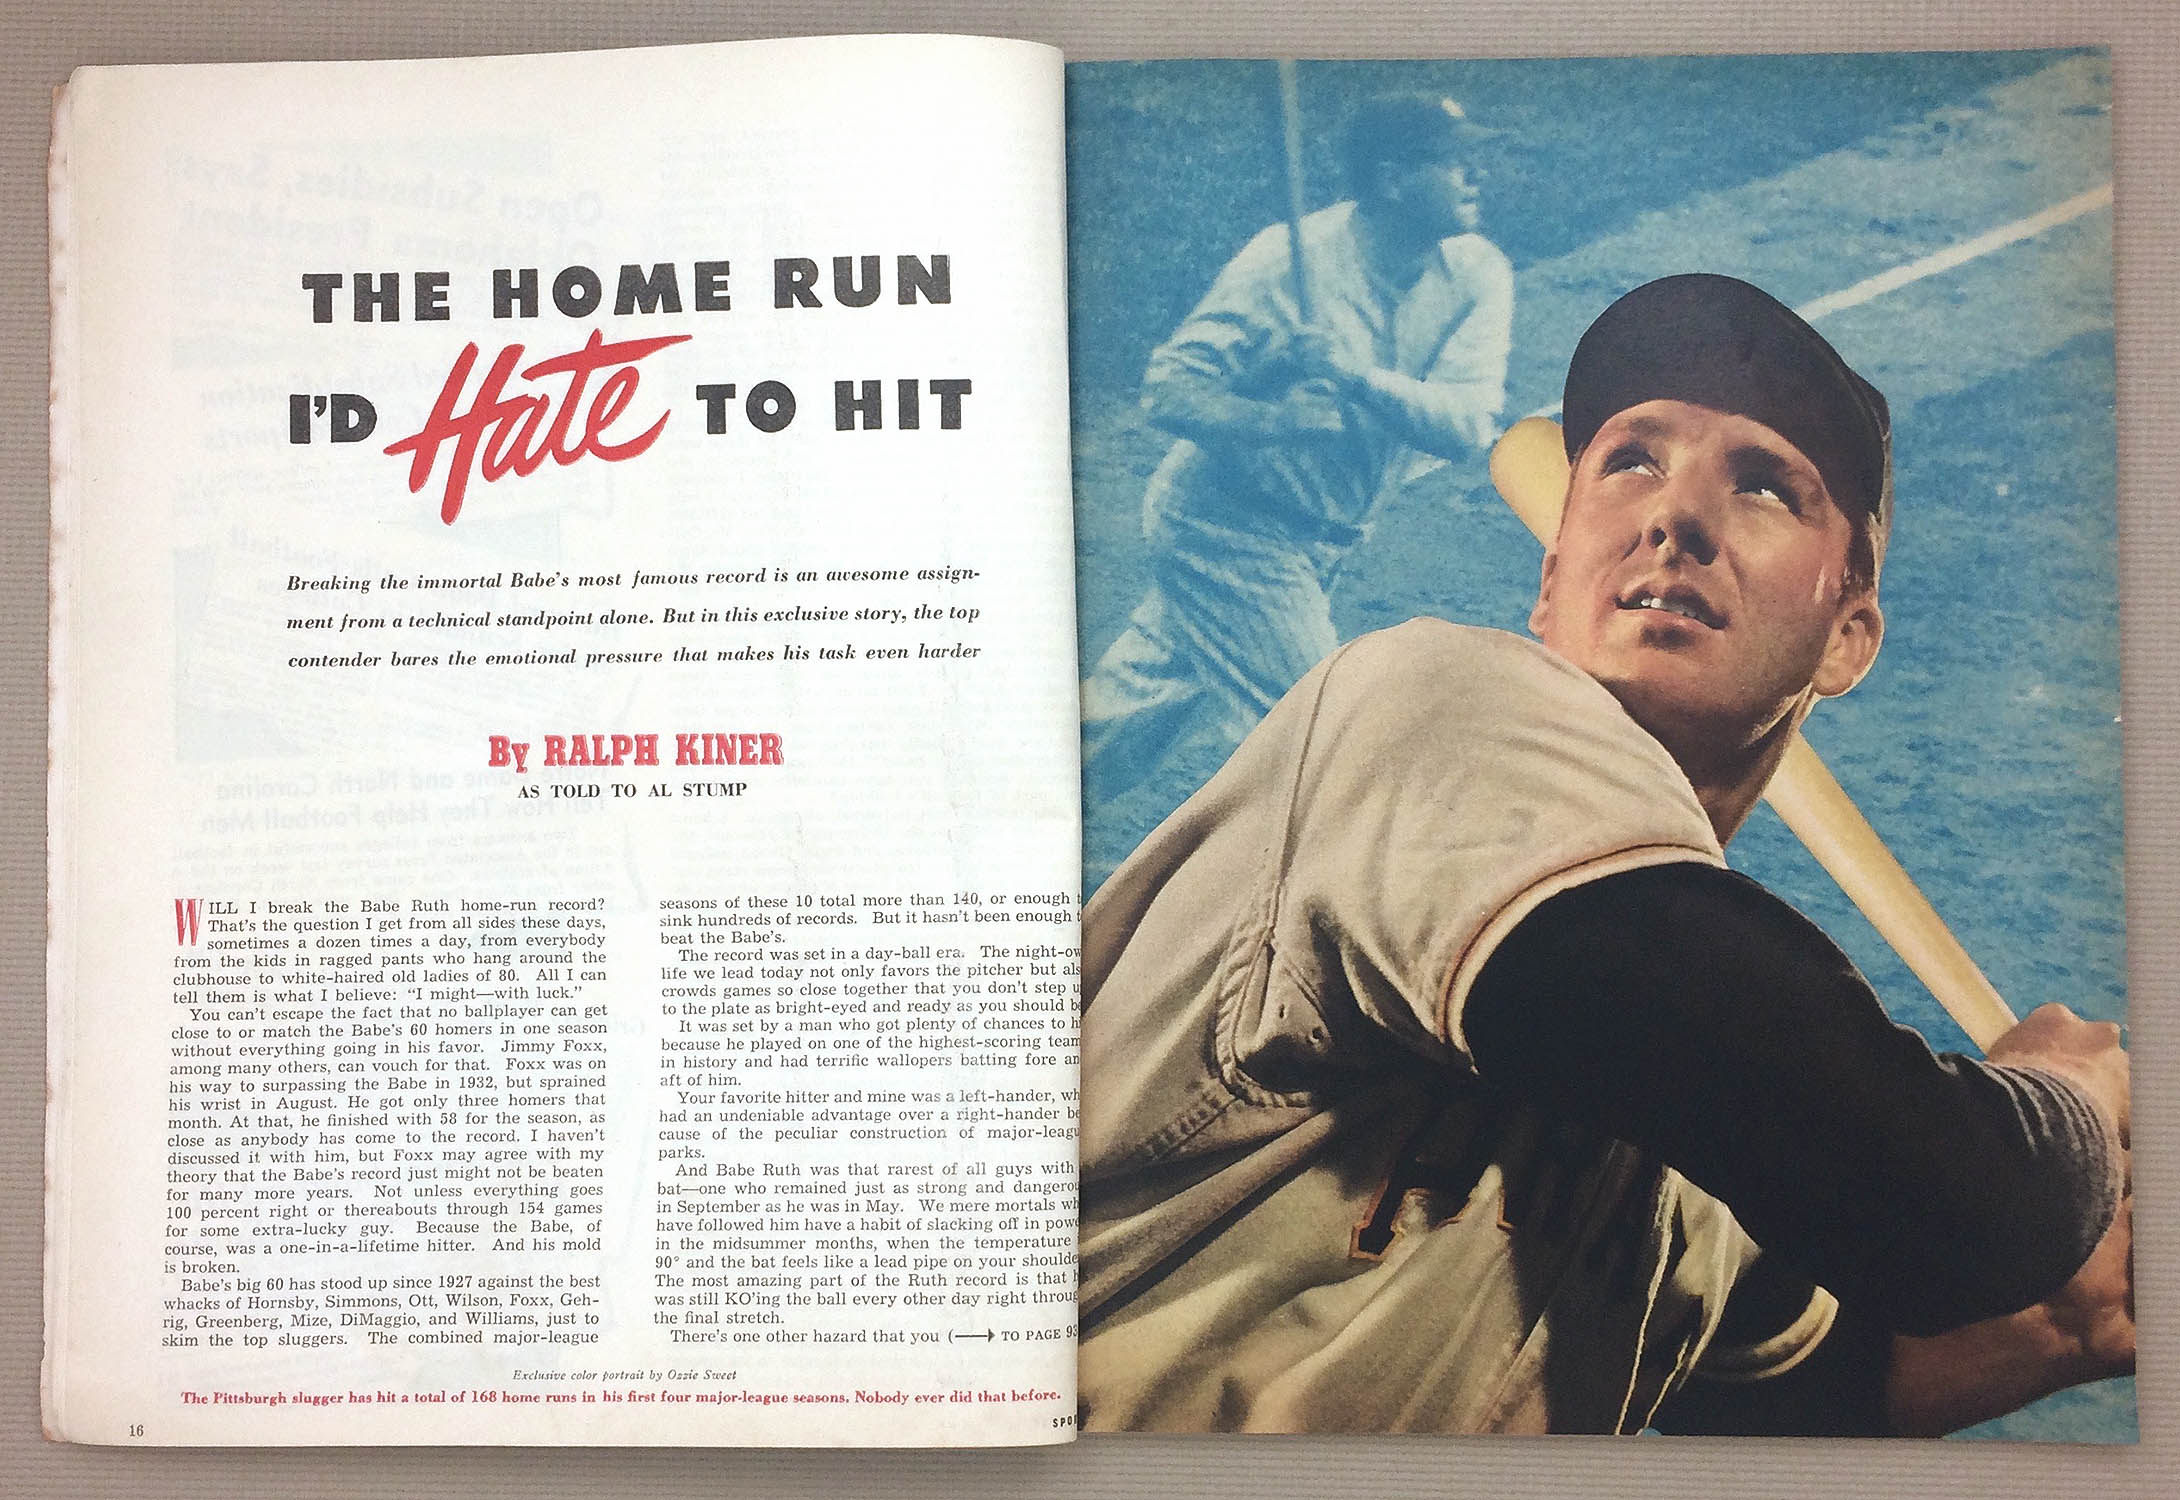 The Home Run I'd Hate to Hit by Ralph Kiner